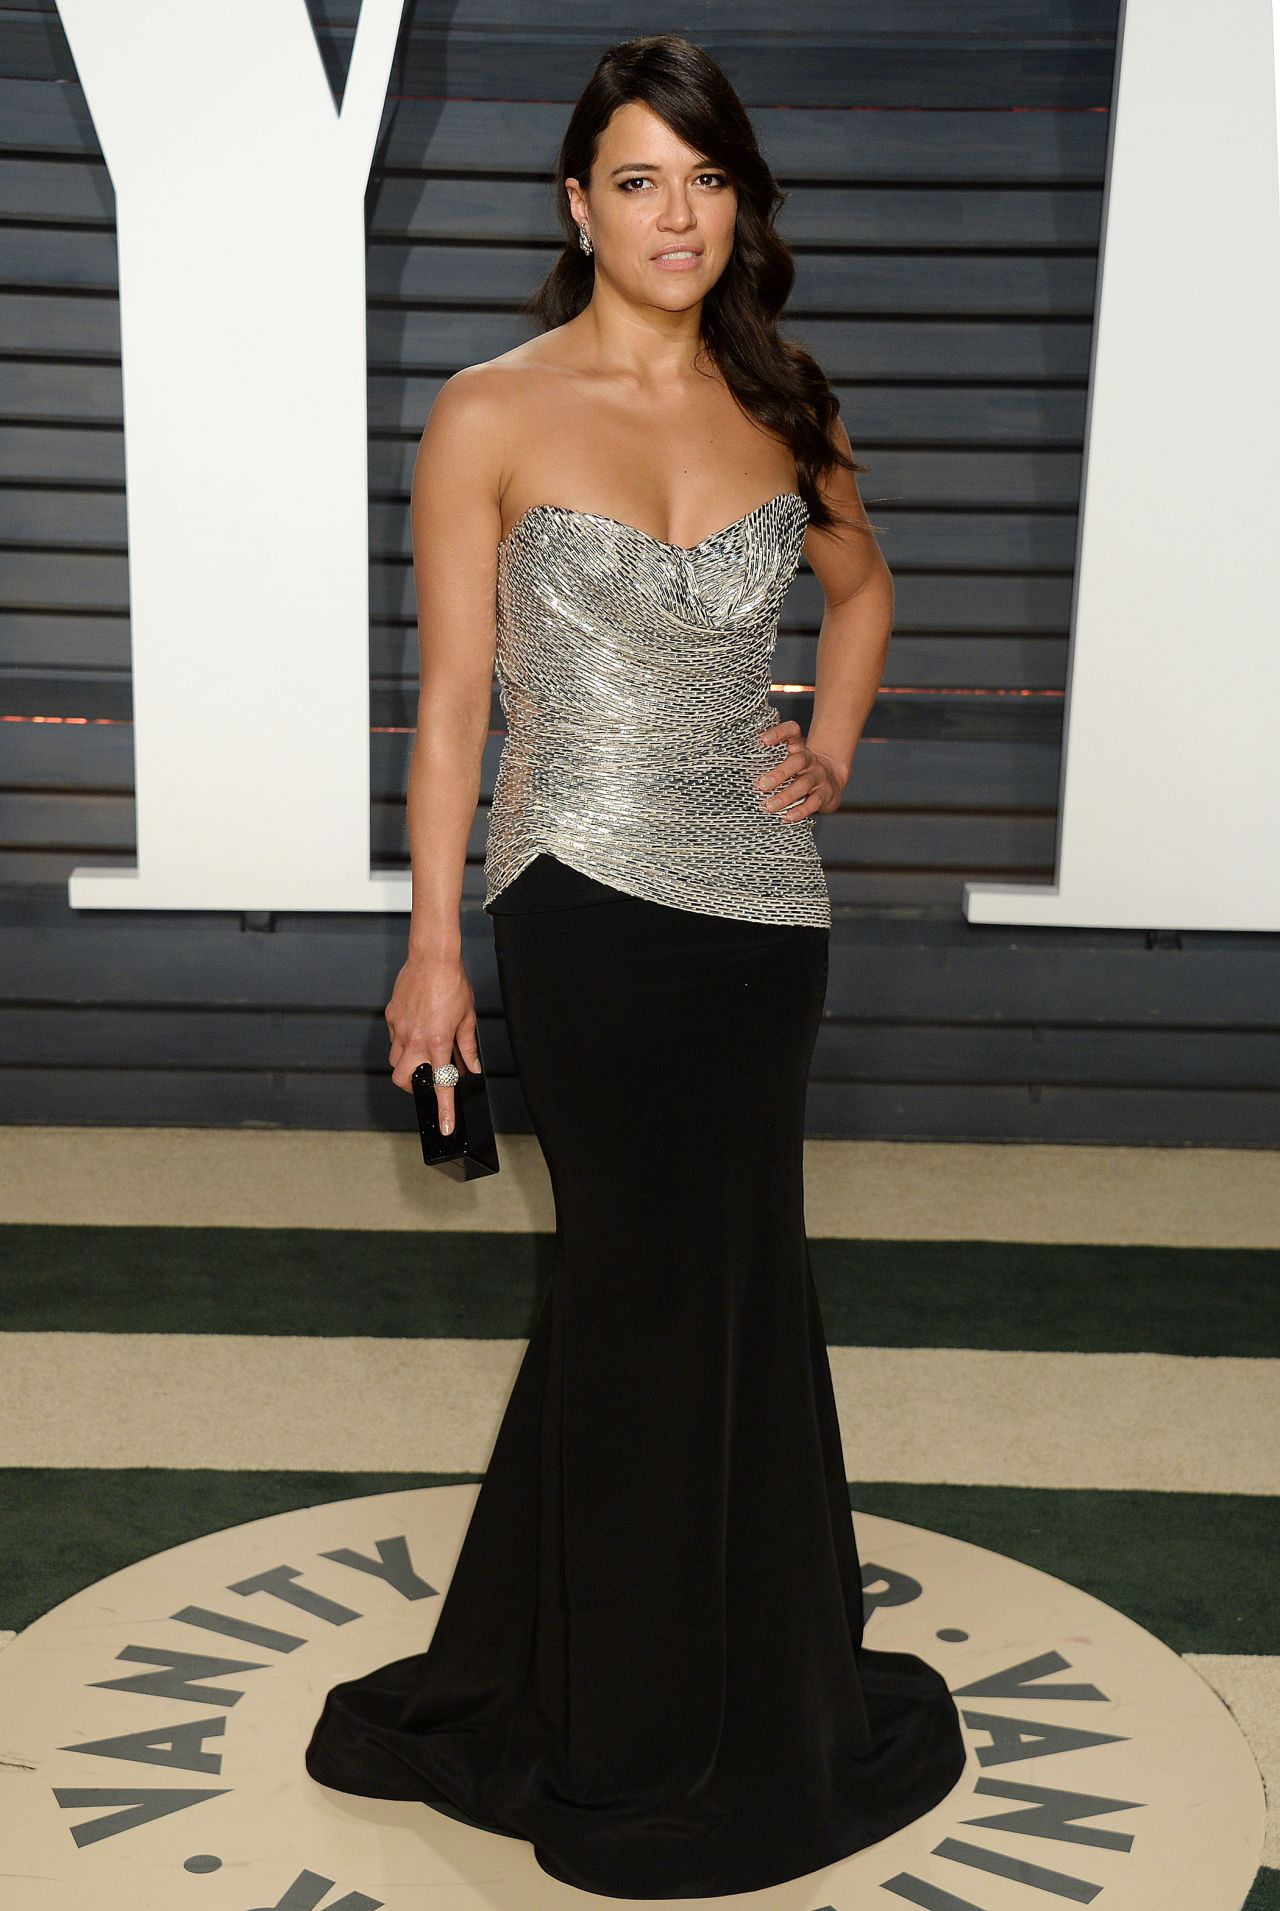 Michelle Rodriguez at Vanity Fair Oscar 2017 Party in Los Angeles